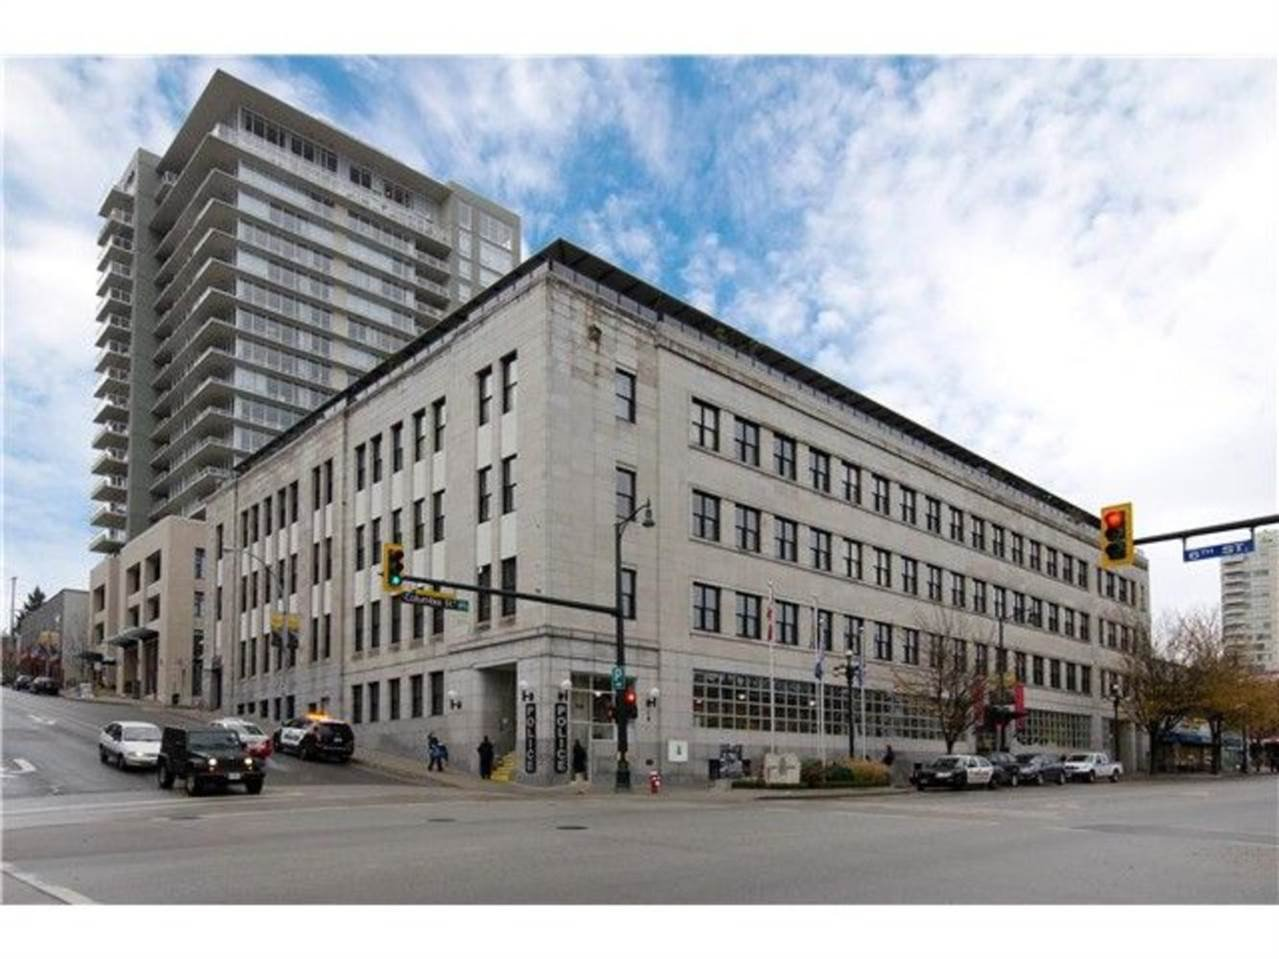 """Main Photo: 510 549 COLUMBIA Street in New Westminster: Downtown NW Condo for sale in """"C2C LOFTS & FLATS"""" : MLS®# R2031496"""